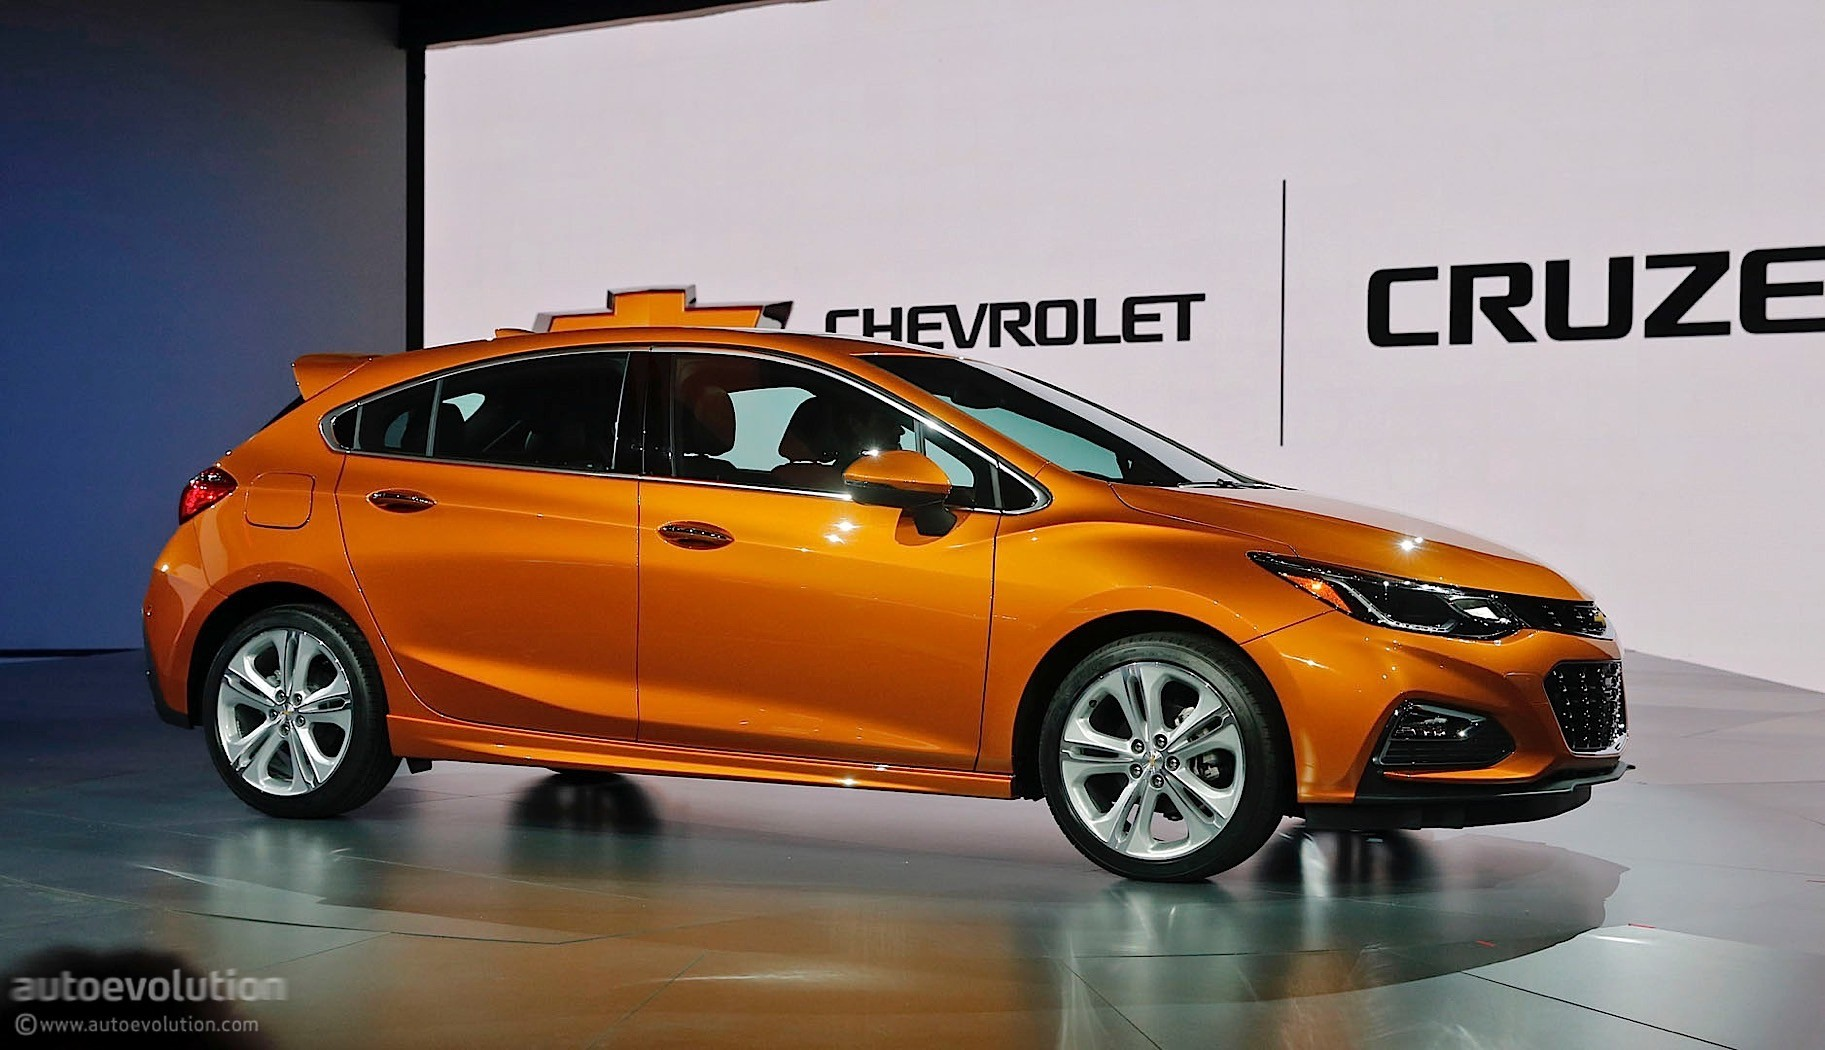 chevrolet cruze diesel confirmed for 2018 my roll out 50 mpg highway targeted autoevolution. Black Bedroom Furniture Sets. Home Design Ideas